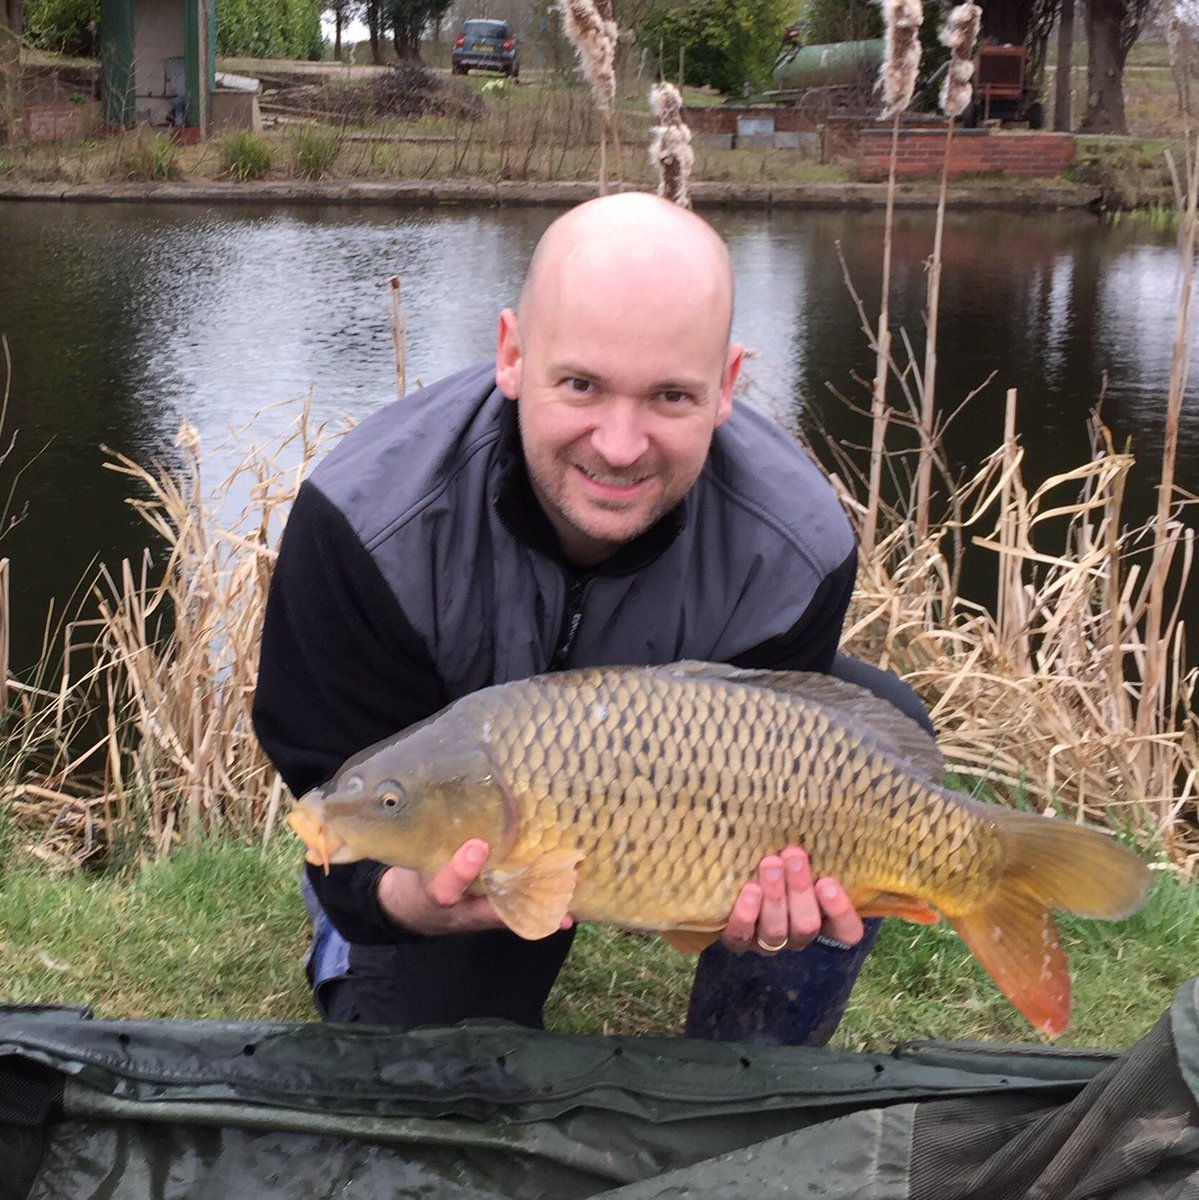 It's been a while since our last carp #fishing trip, so planning a few <b>Hour</b>s #carpfishing #